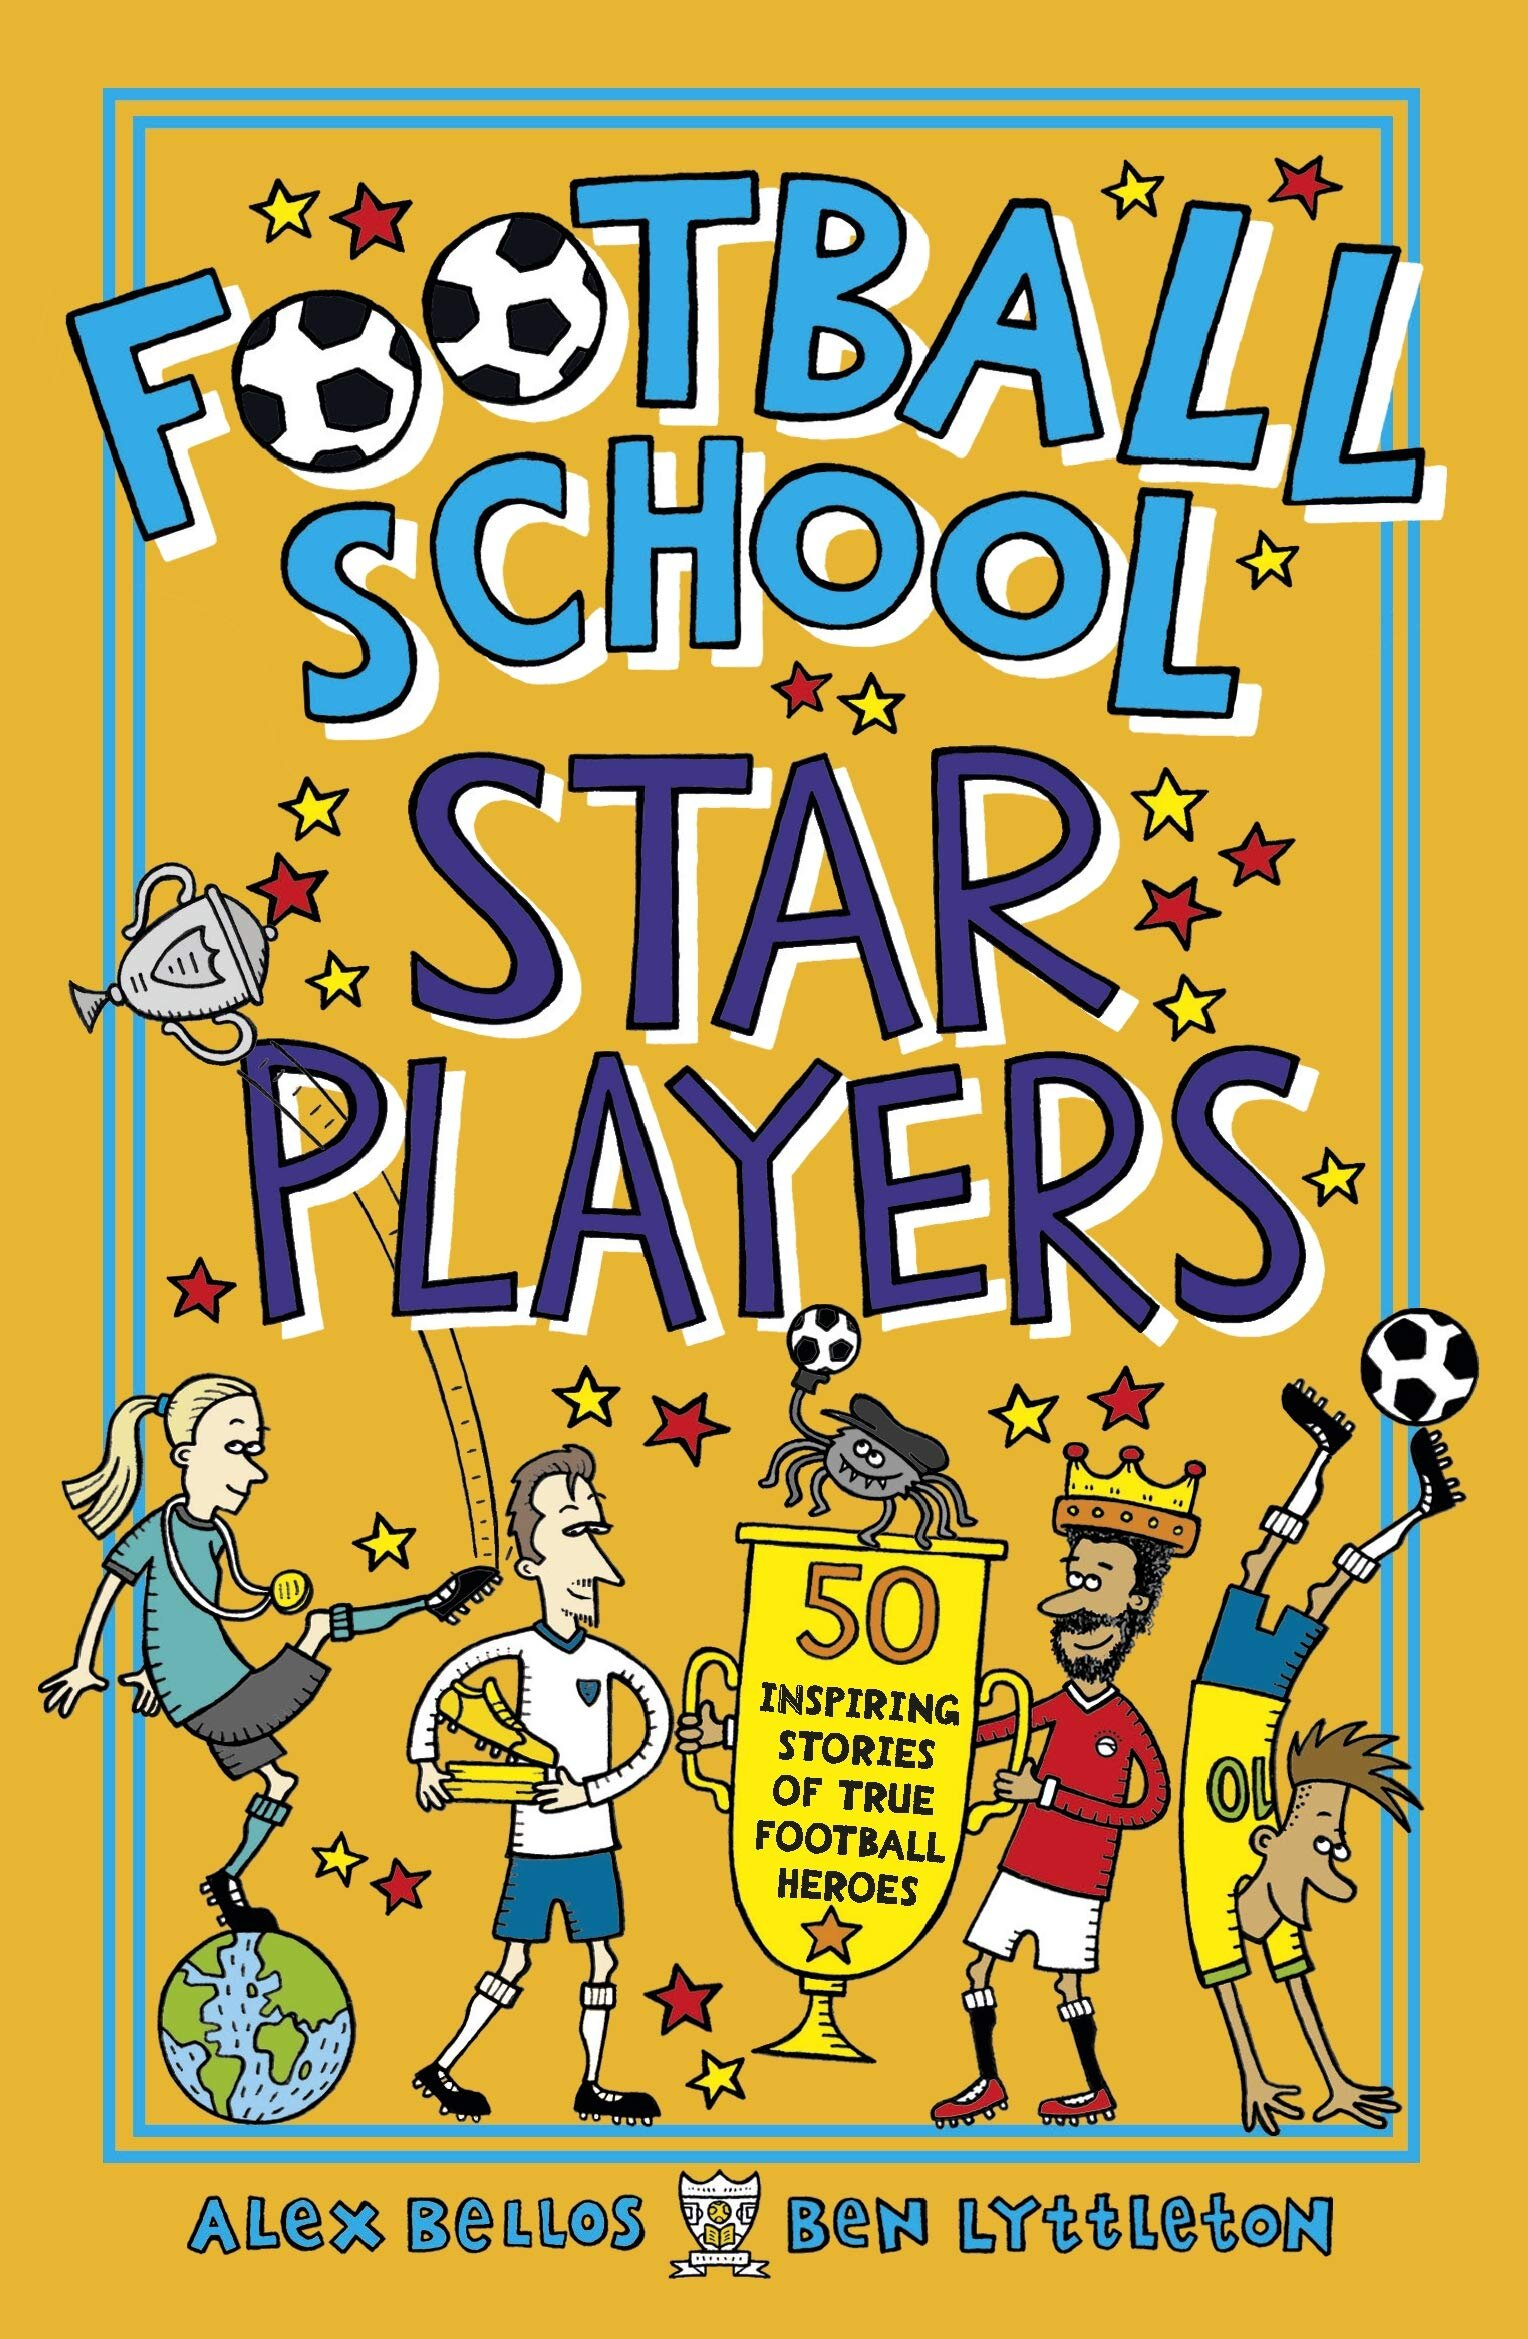 STAR PLAYERS - Profiles of 50 players - men and women - who have been inspirational on and off the pitch. Includes contemporary players like Harry Kane, Lionel Messi, Lucy Bronze and Megan Rapinoe, as well as legends like Pelé, Bobby Charlton and Lily Parr.